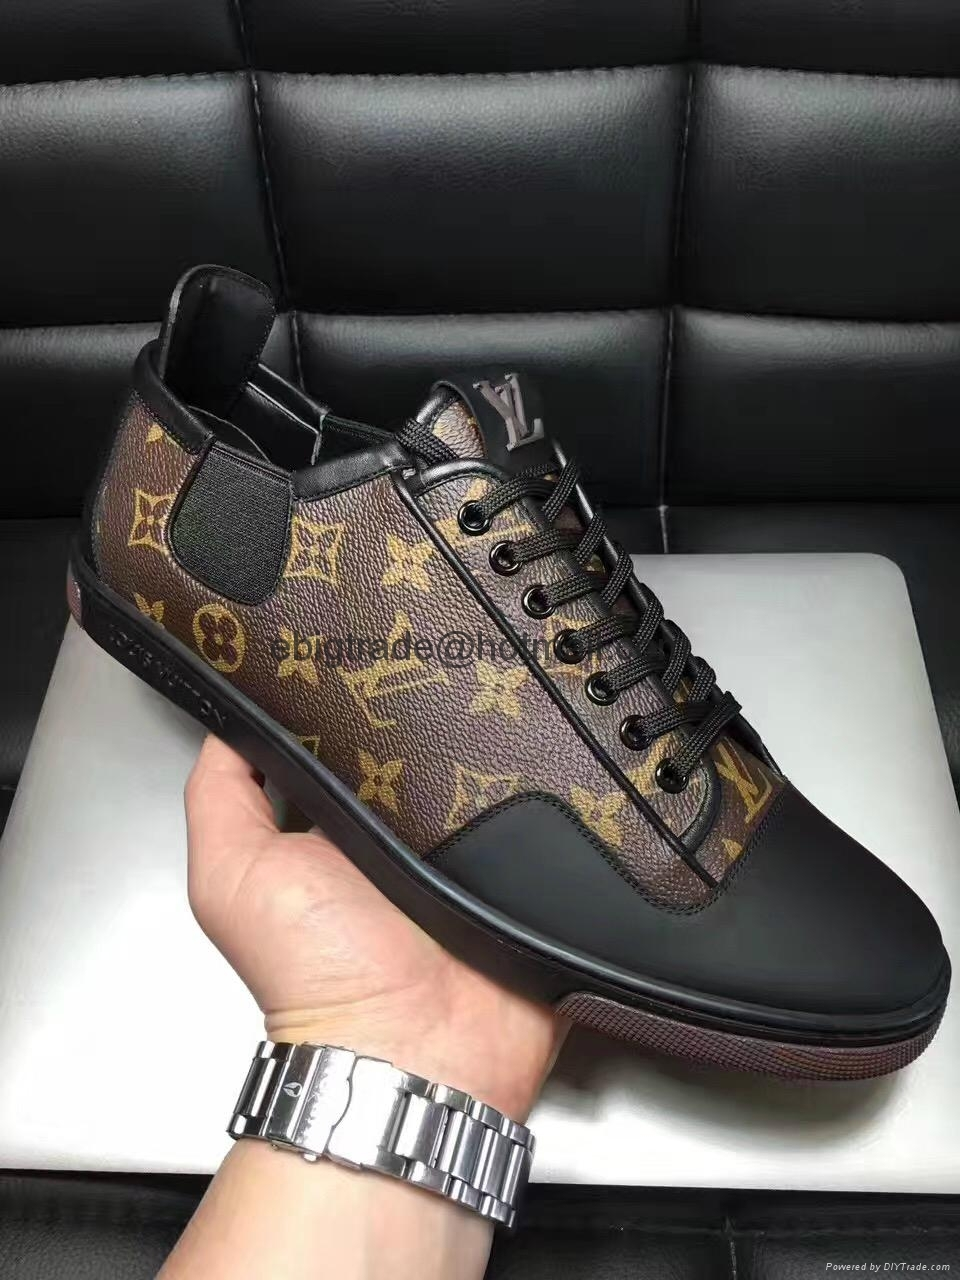 LV shoes on sale